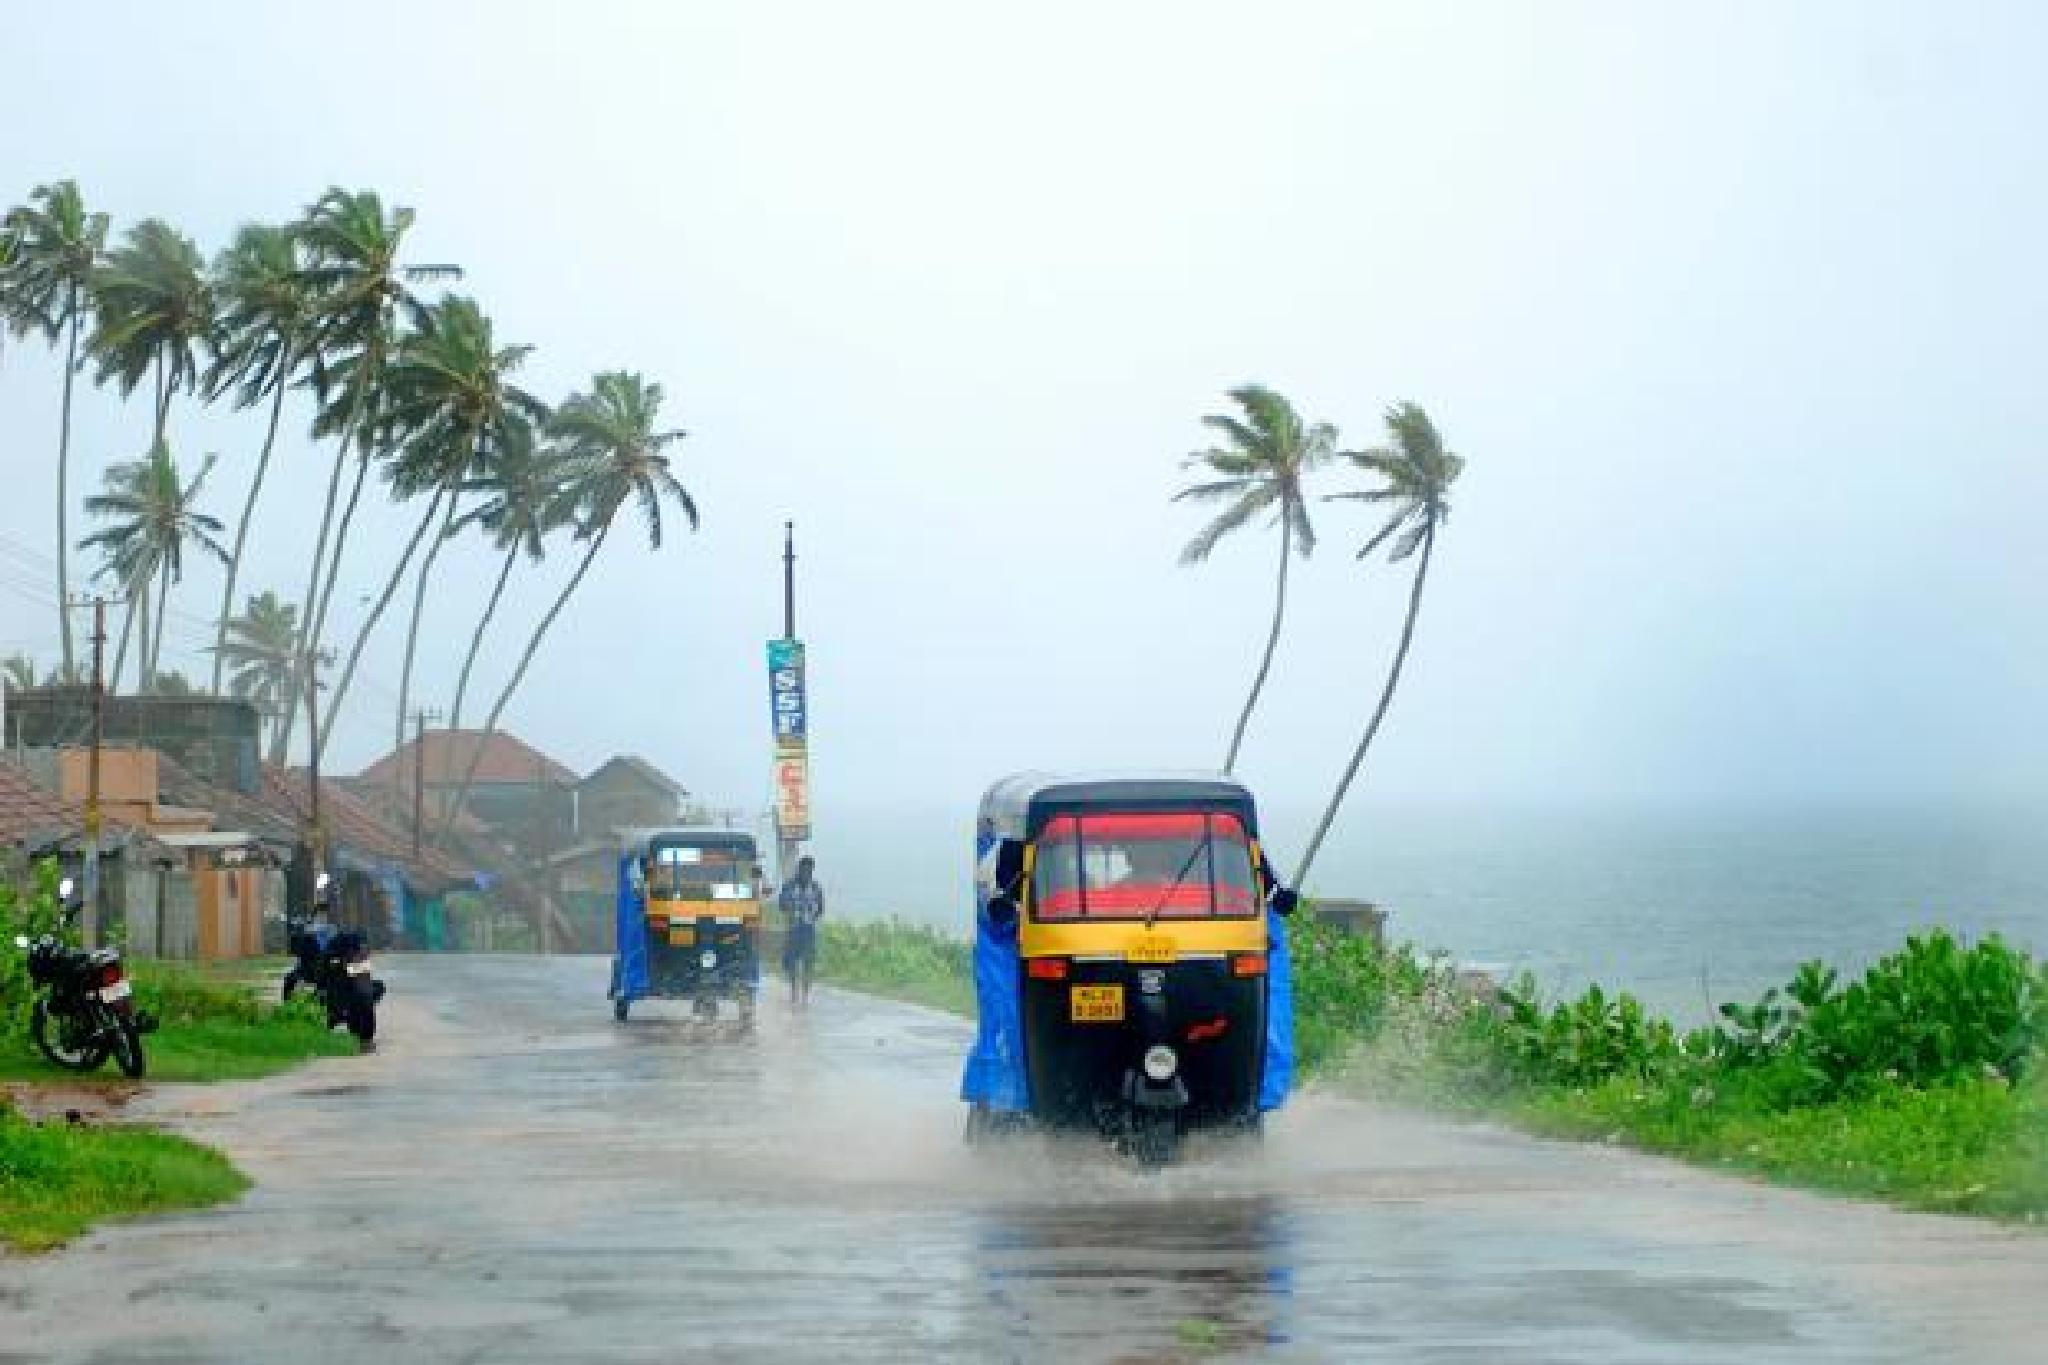 A rainy day in Kerala(India) by Jino John